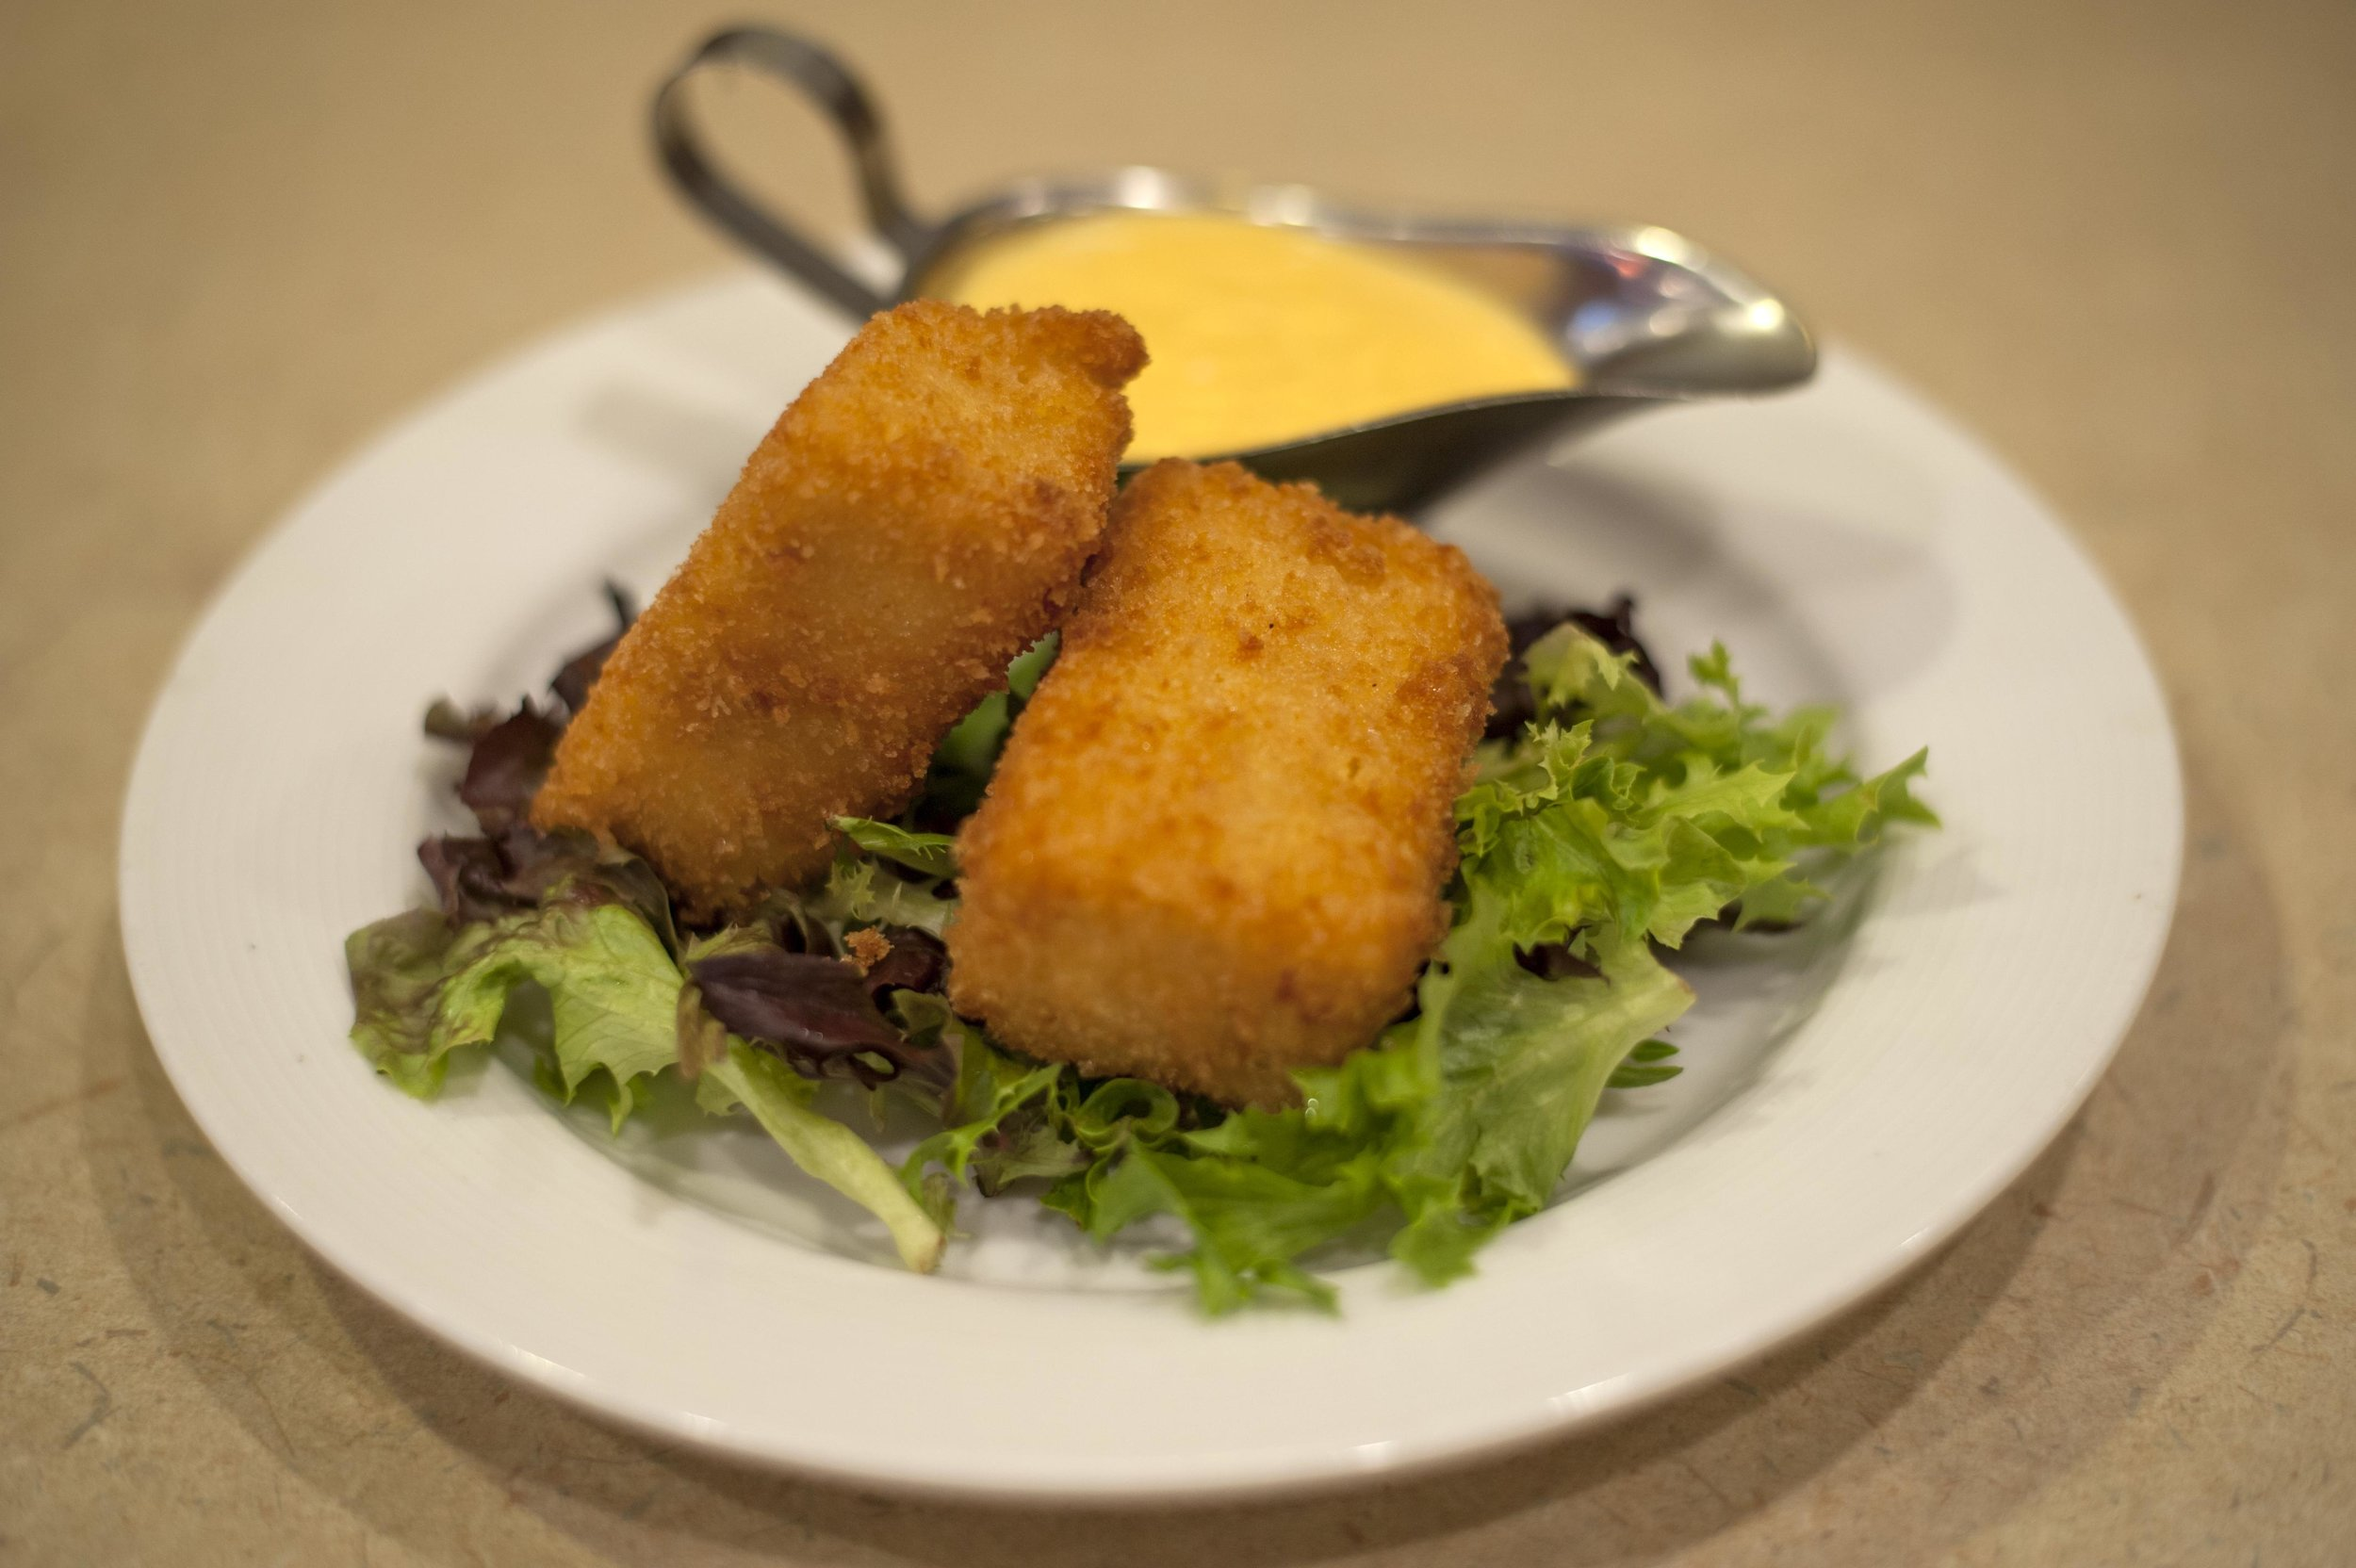 The Deep Fried Mac 'n' Cheese features a wholesome helping of mac 'n' cheese, deep fried to crispy perfection with a side of cheddar cheese sauce.